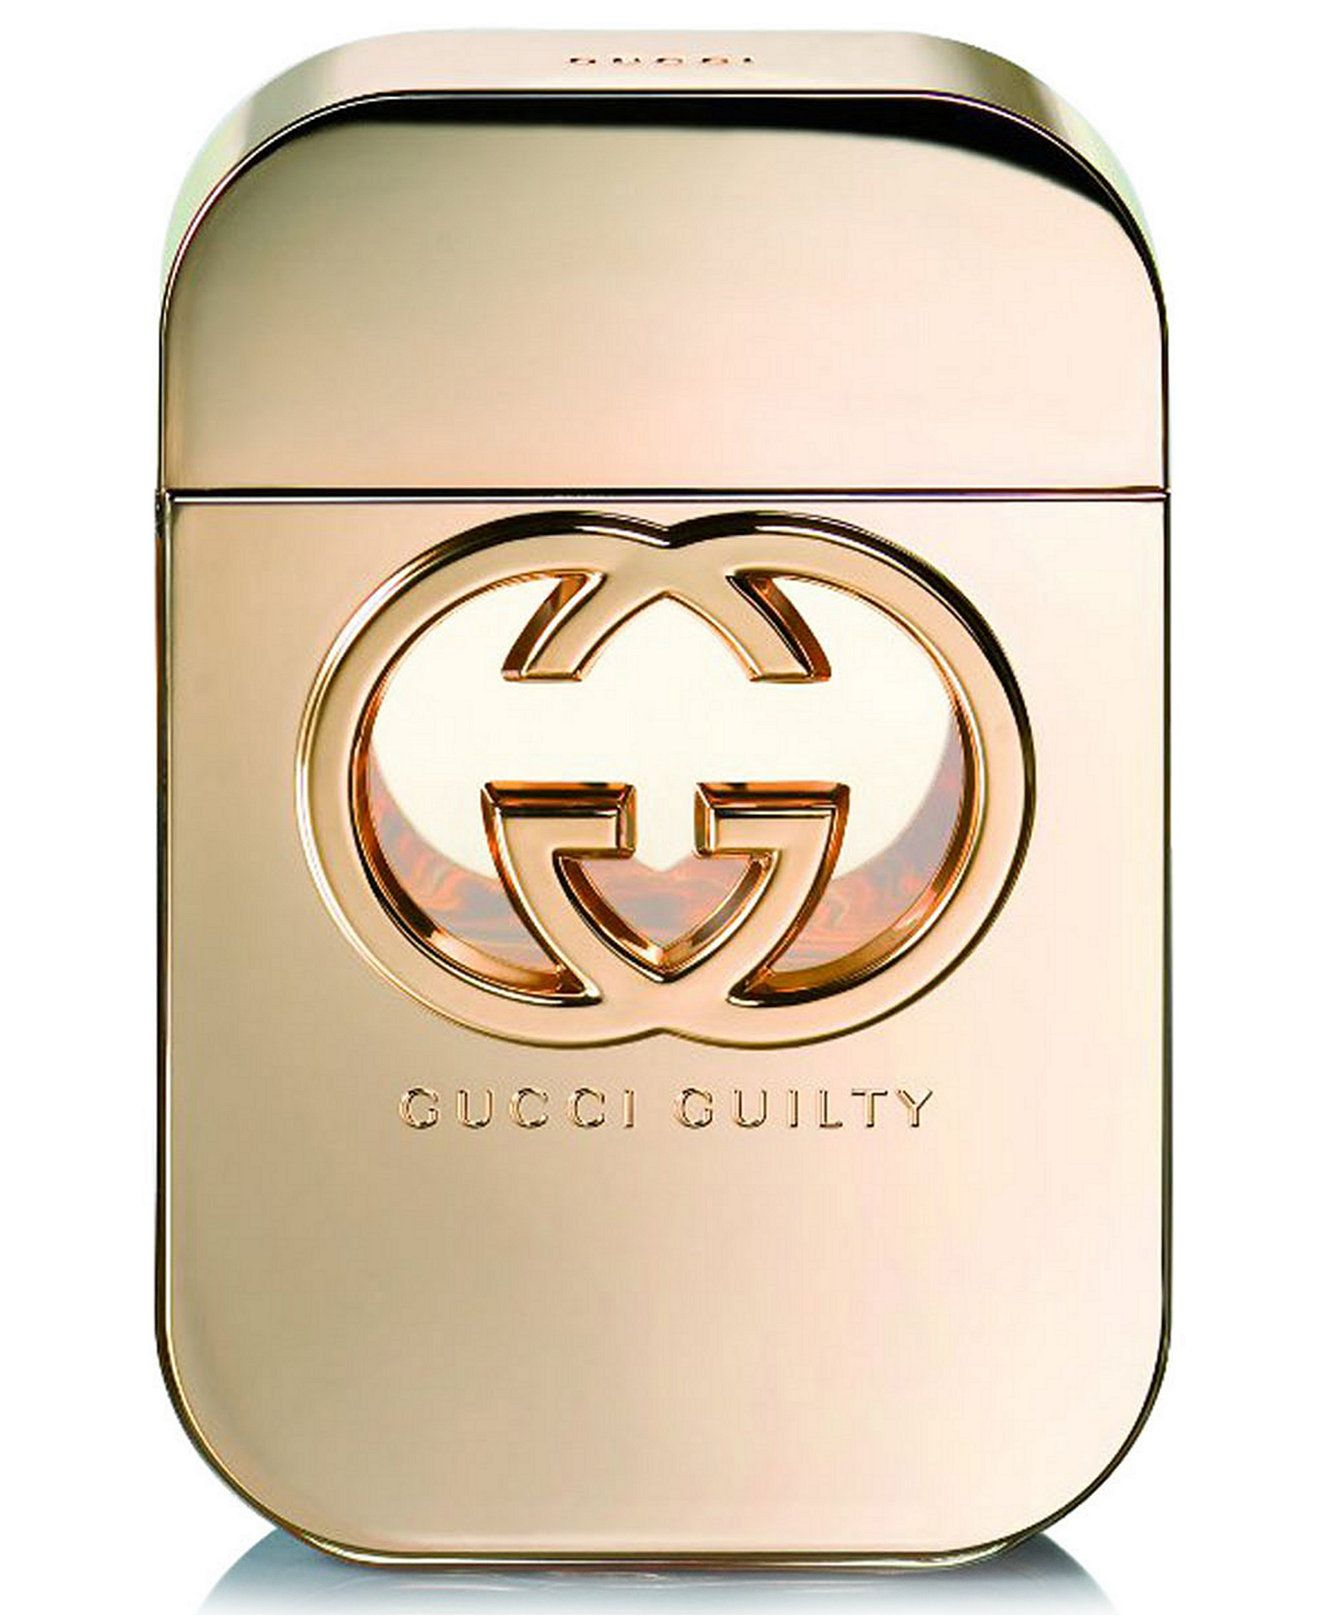 GUCCI GUILTY Fragrance Collection for Women - GUCCI Guilty - Beauty - Macy s 5b8bd851353